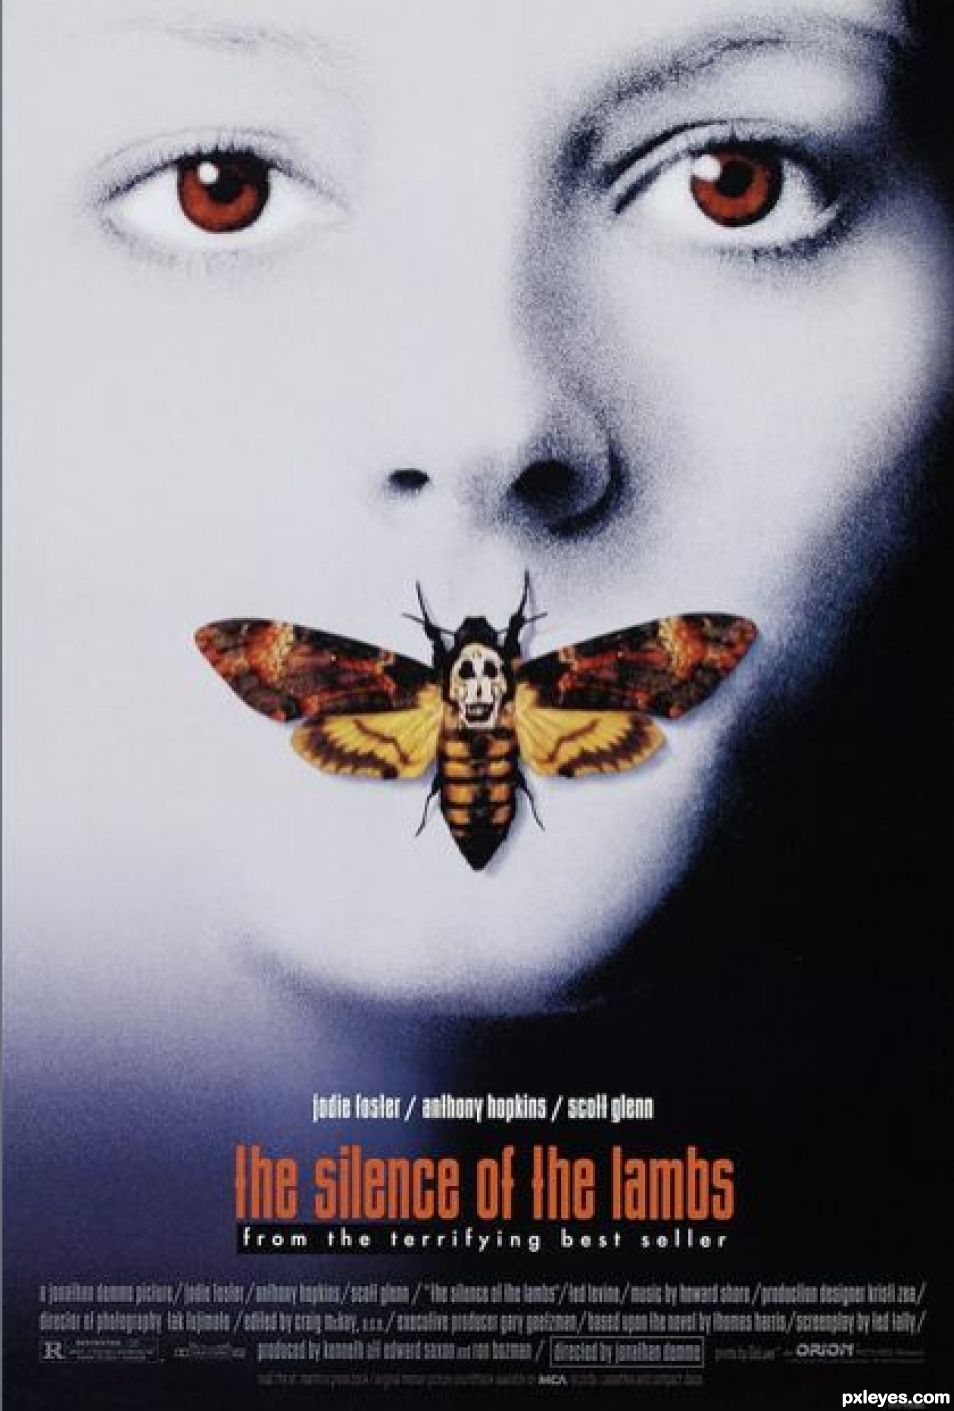 silence of the lambs, the silence of the lambs, silence of the lambs poster